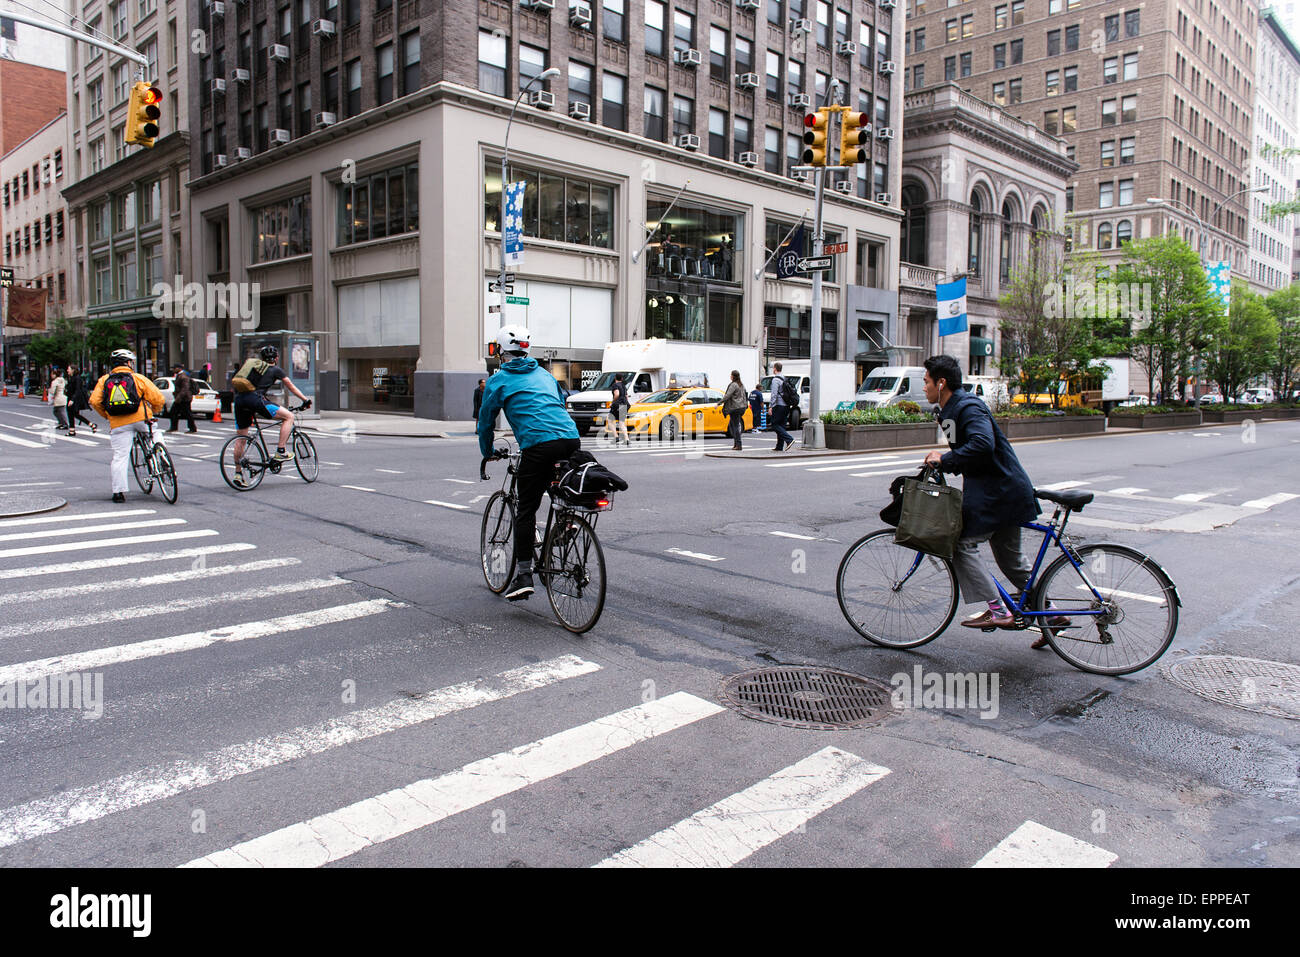 Bicyclists commuting during the New York morning rush hour. - Stock Image